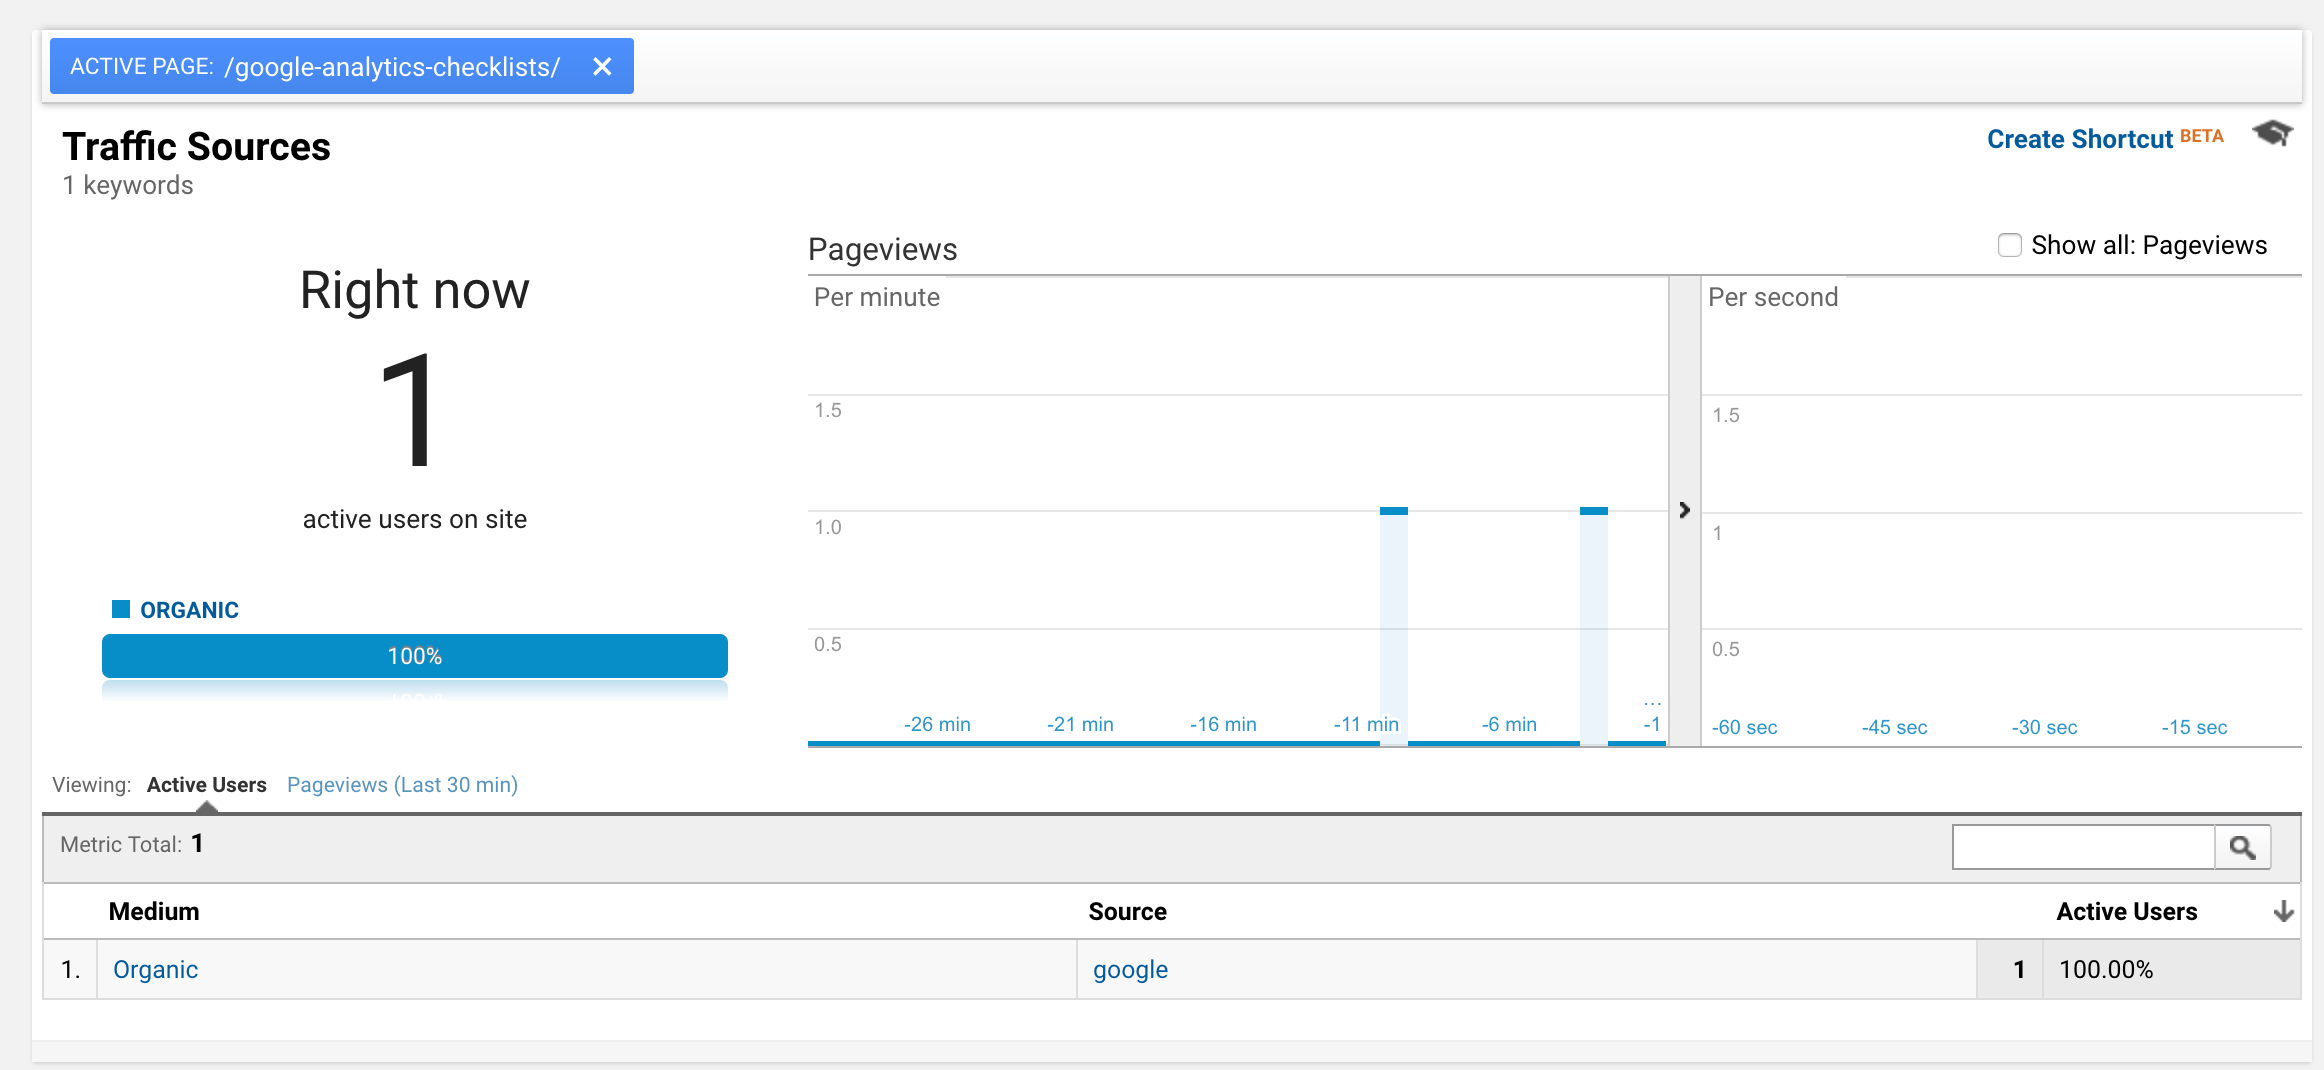 checking your source/medium in Google Analytics real-time reports